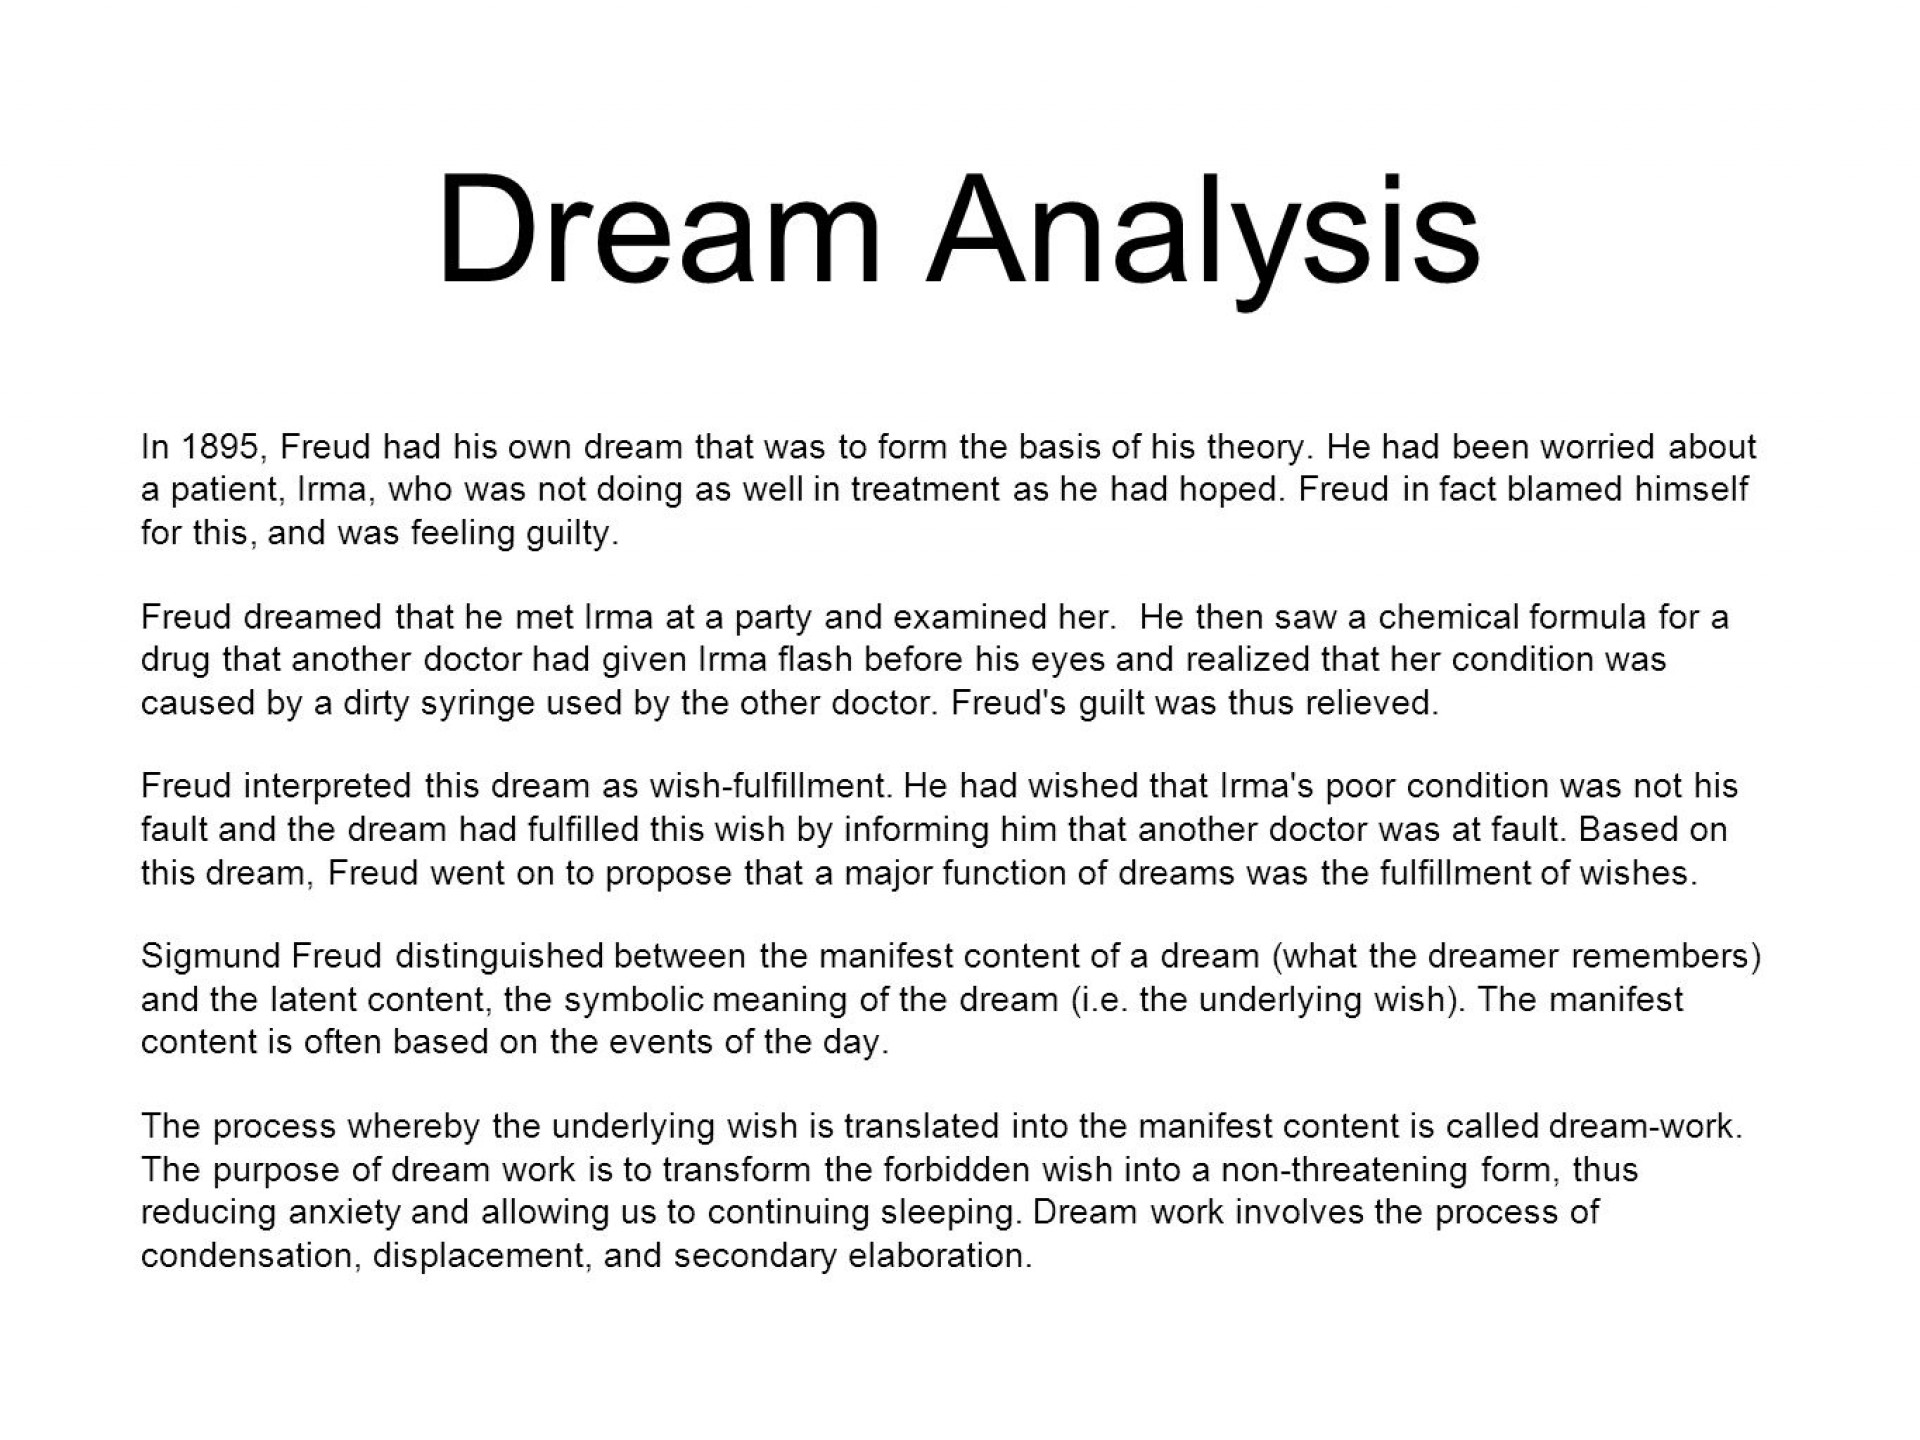 016 Research Paper Dreamanalysis Psychology Topics On Rare Dreams Articles 1920